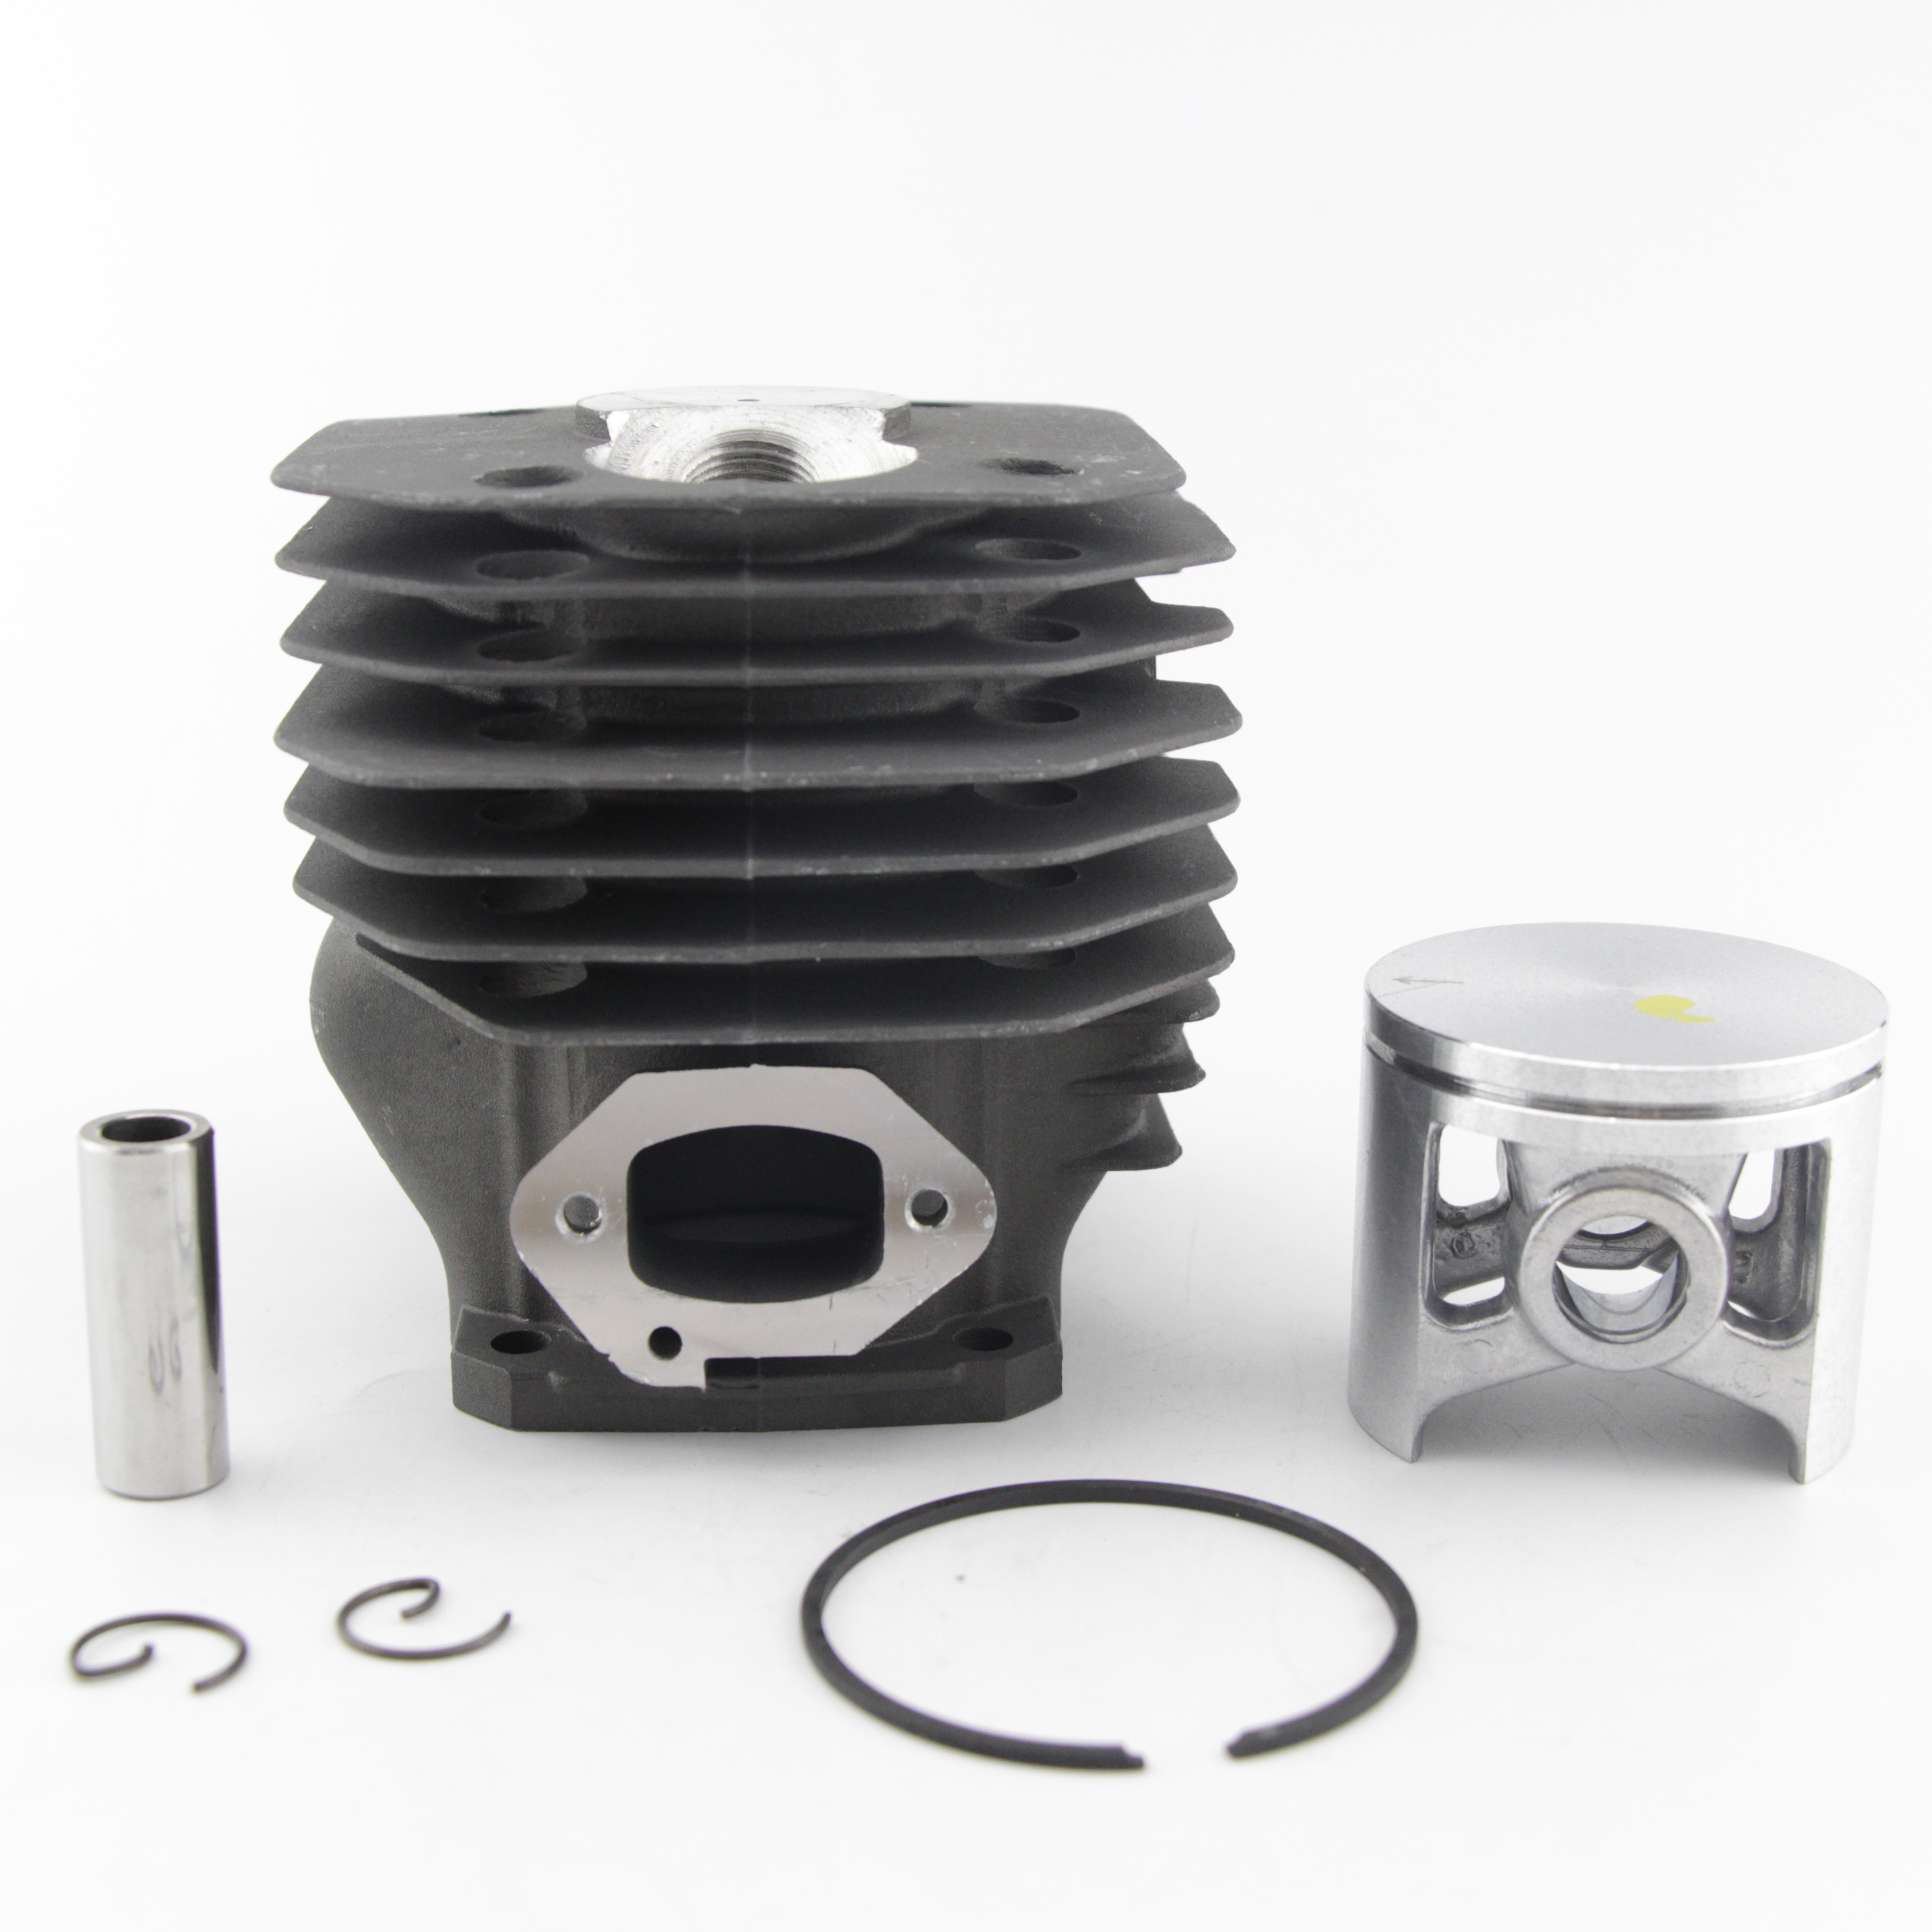 48mm Cylinder Piston Kit For Husqvarna 261 262 262XP Chainsaw Rebuild Engine Replacement Parts#503 54 11-72